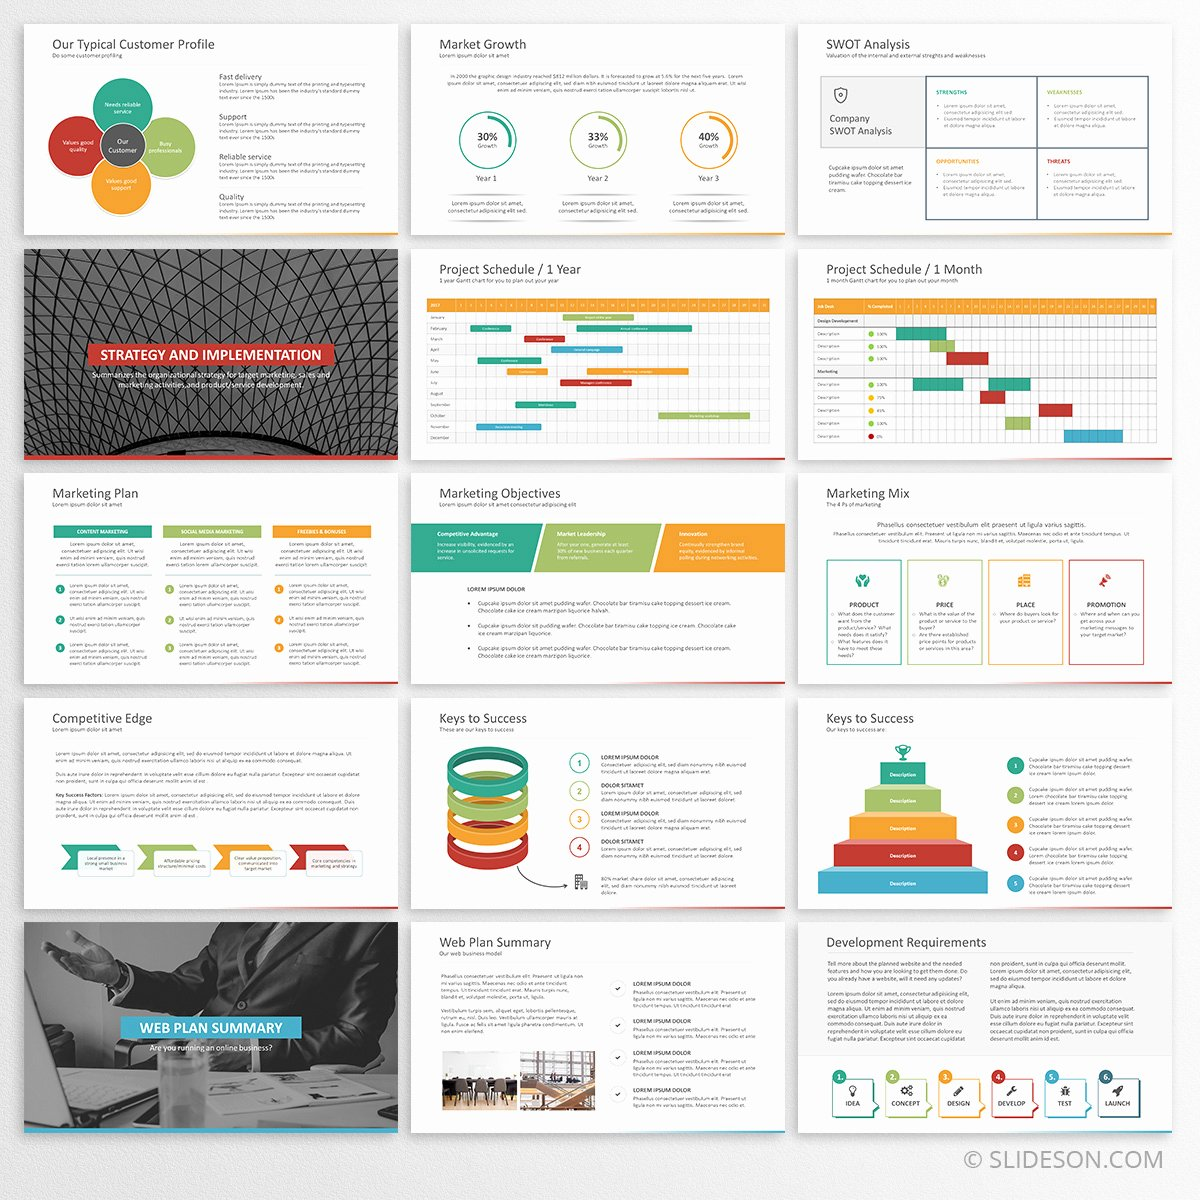 Business Plan Powerpoint Template Free Best Of Business Plan Template for Powerpoint Slideson